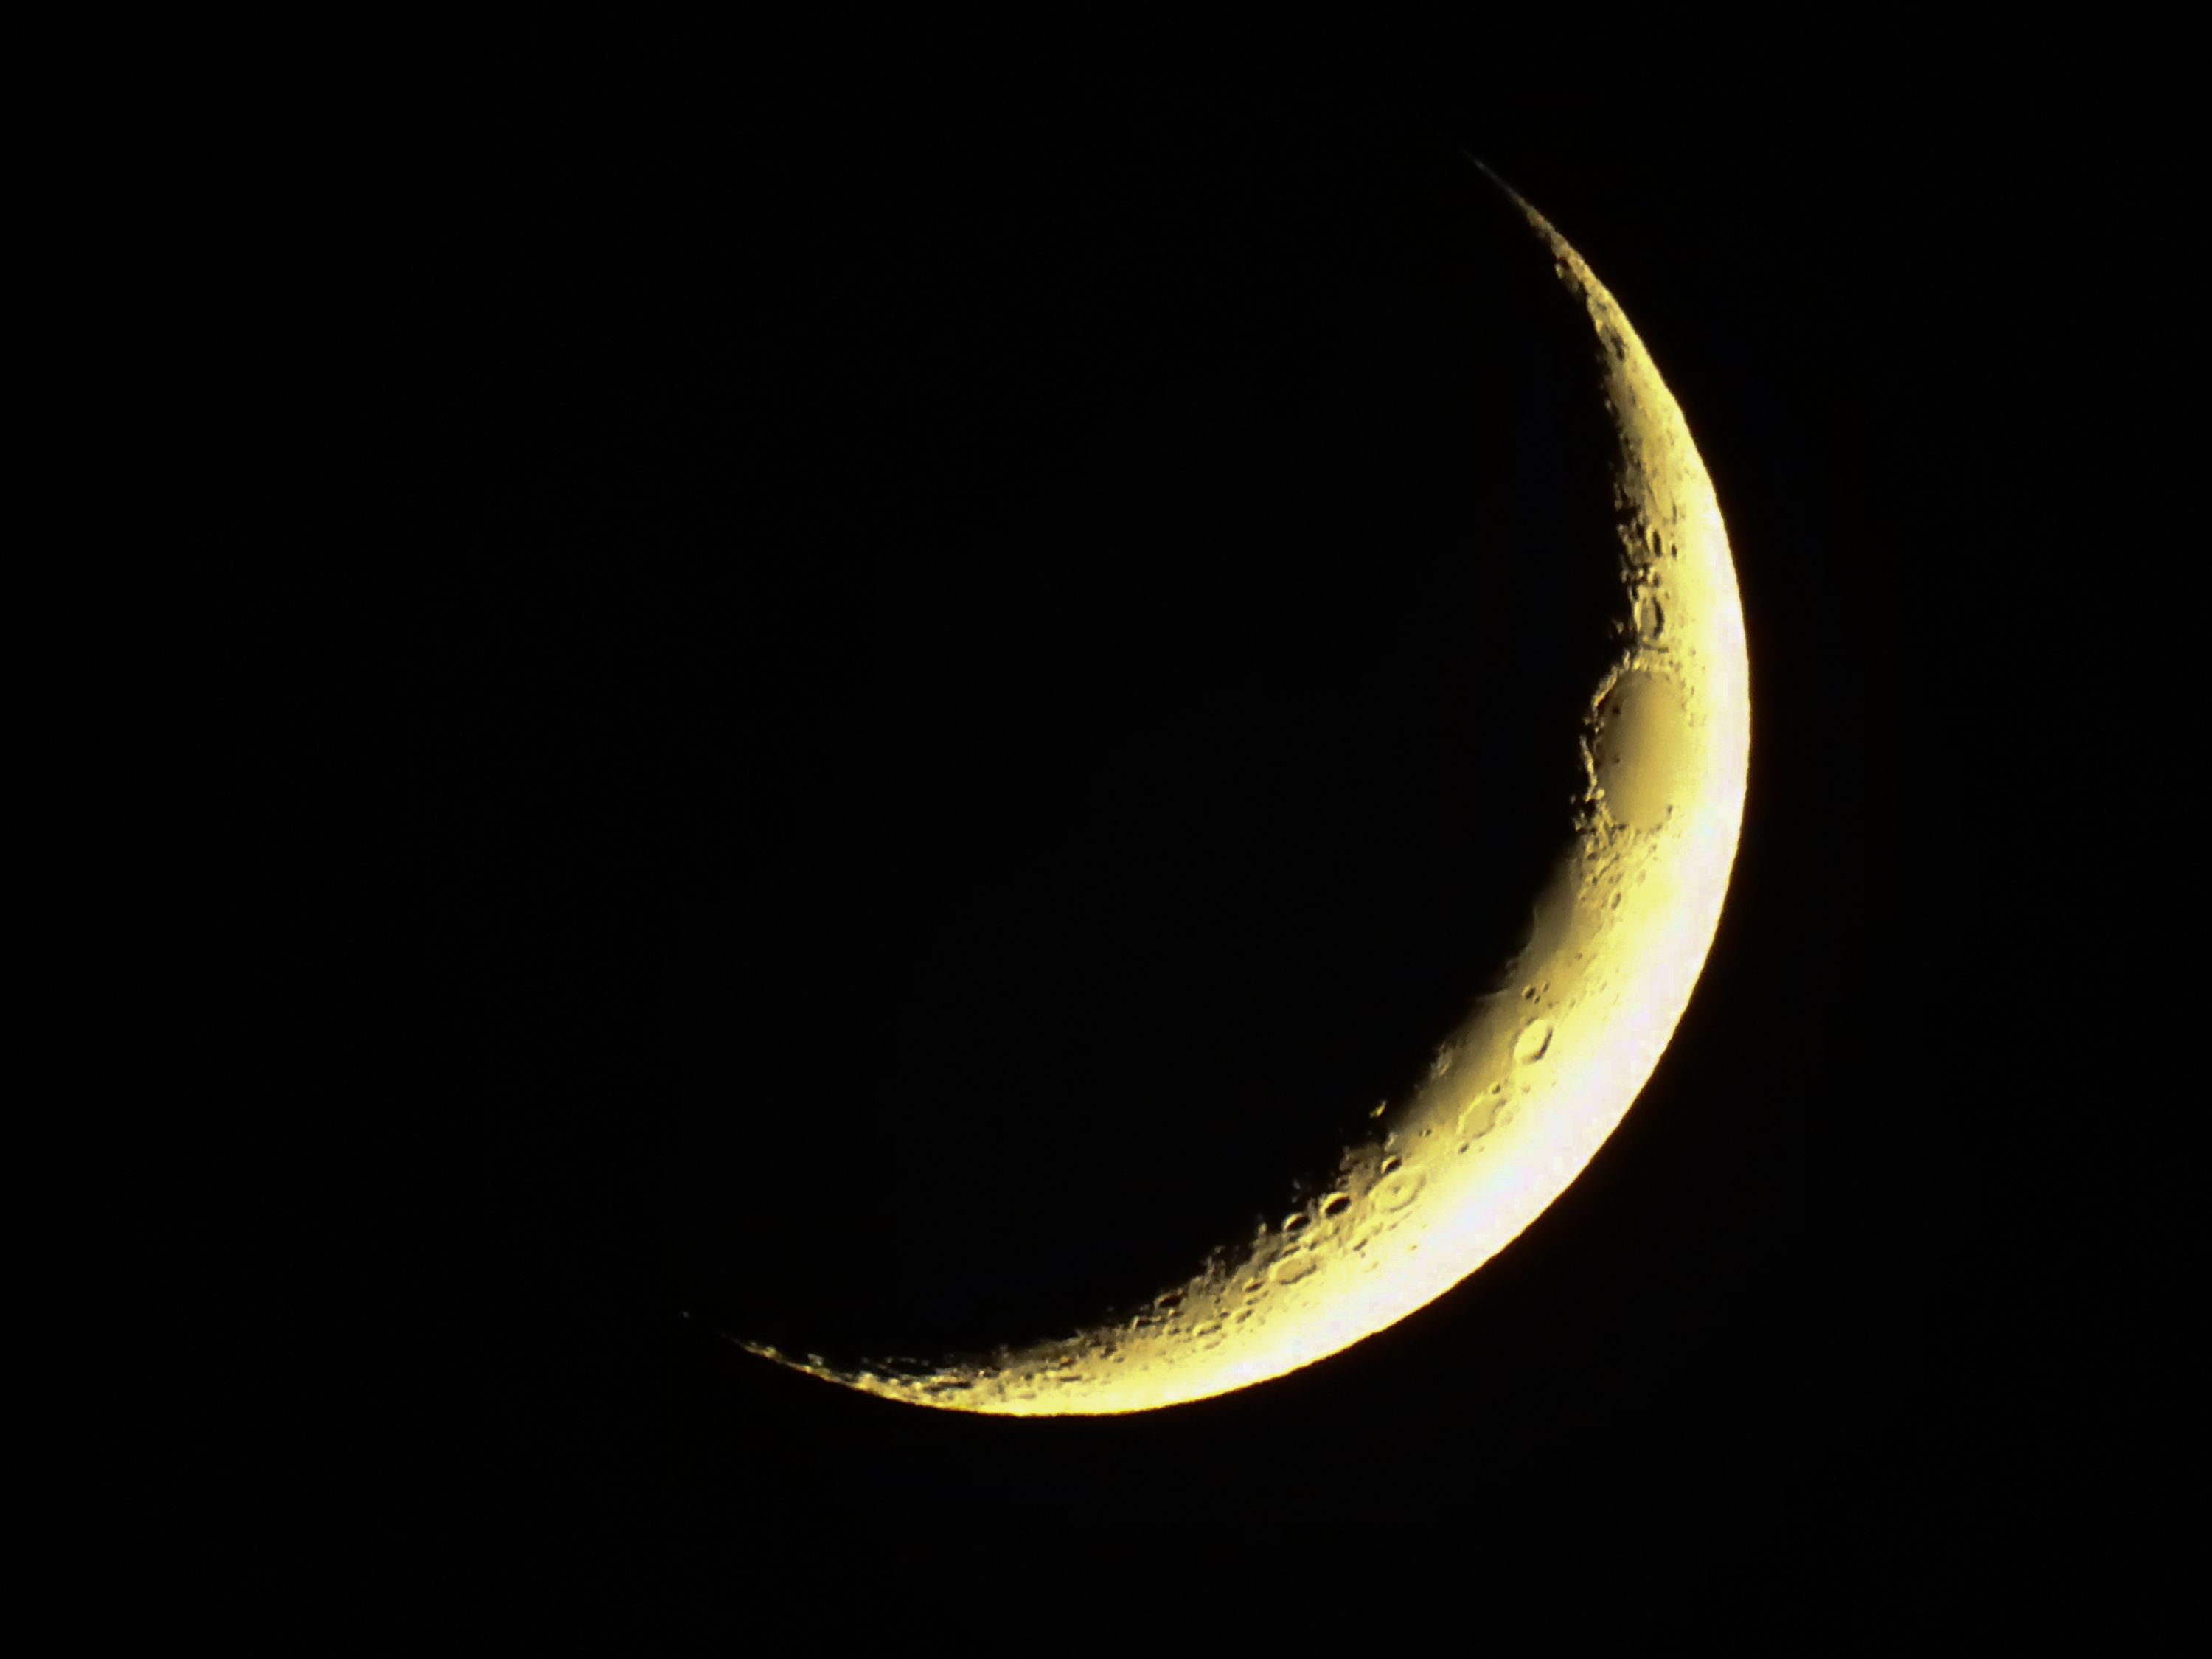 new-moon-royalty-free-image-853931564-1548955145